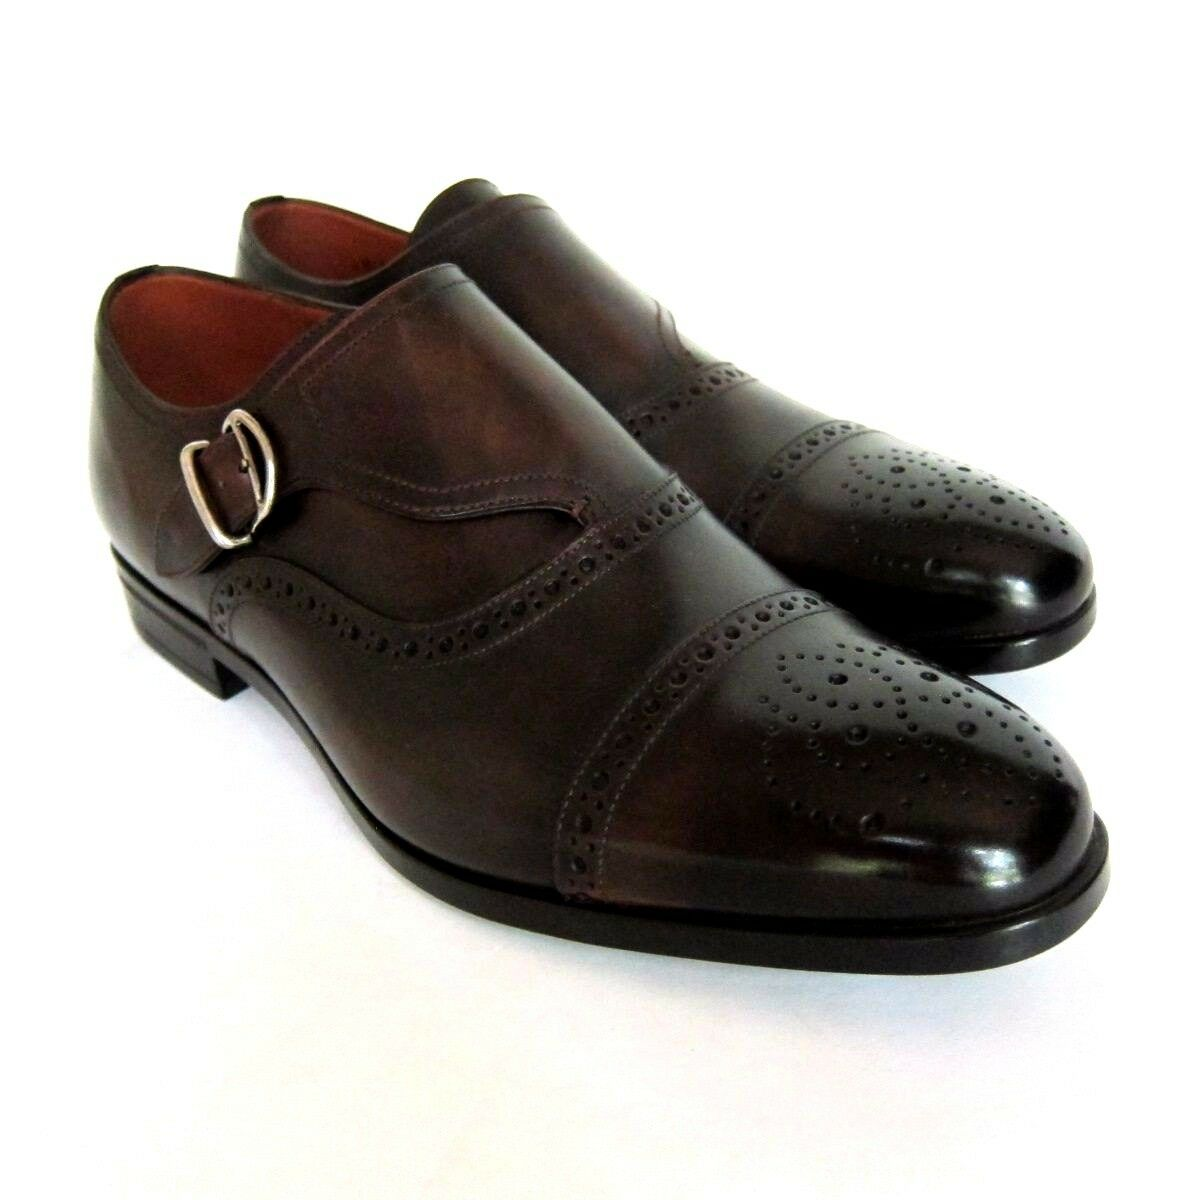 S-1898140 New Bally Loafers Lanor Brown Washed Loafers Bally Shoes Size US 8D Marked 7E 6488ed